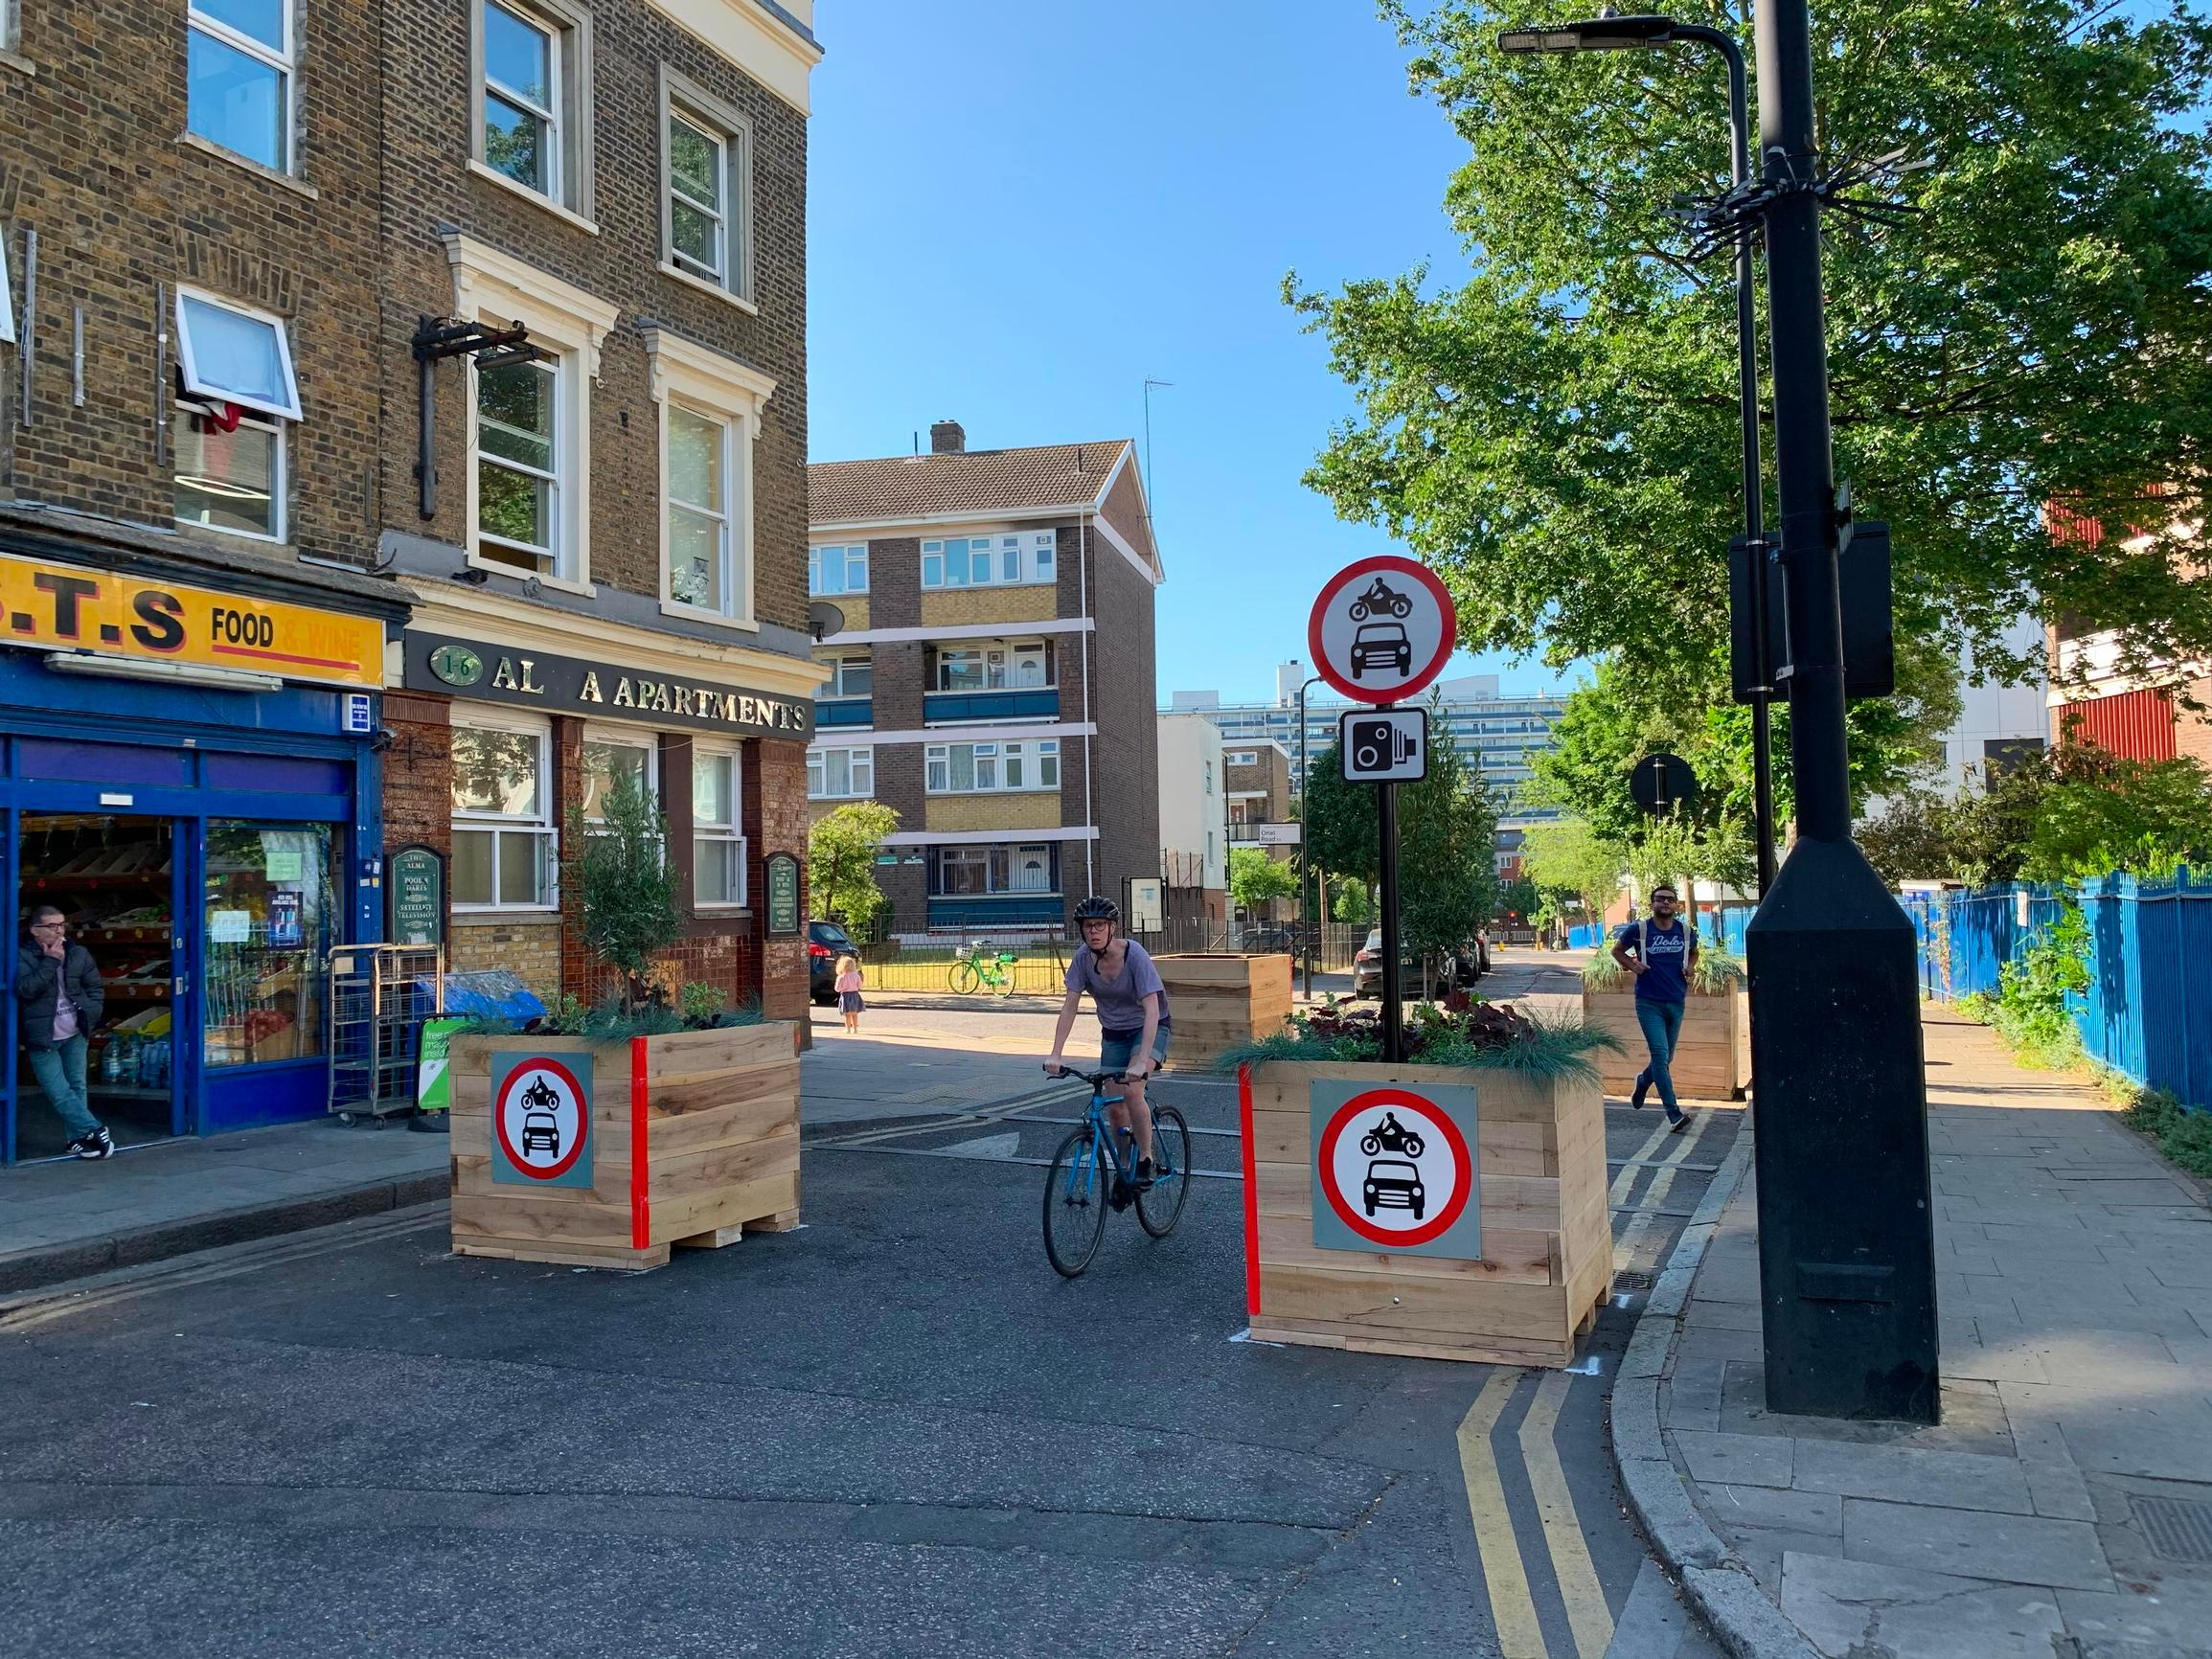 A modal filter as part of a low traffic neighbourhood (LTN) scheme in the London Borough of Hackney. LTNs continues to stir emotions, see letters from John Sutton, Terry Hudson, and Rik Andrew